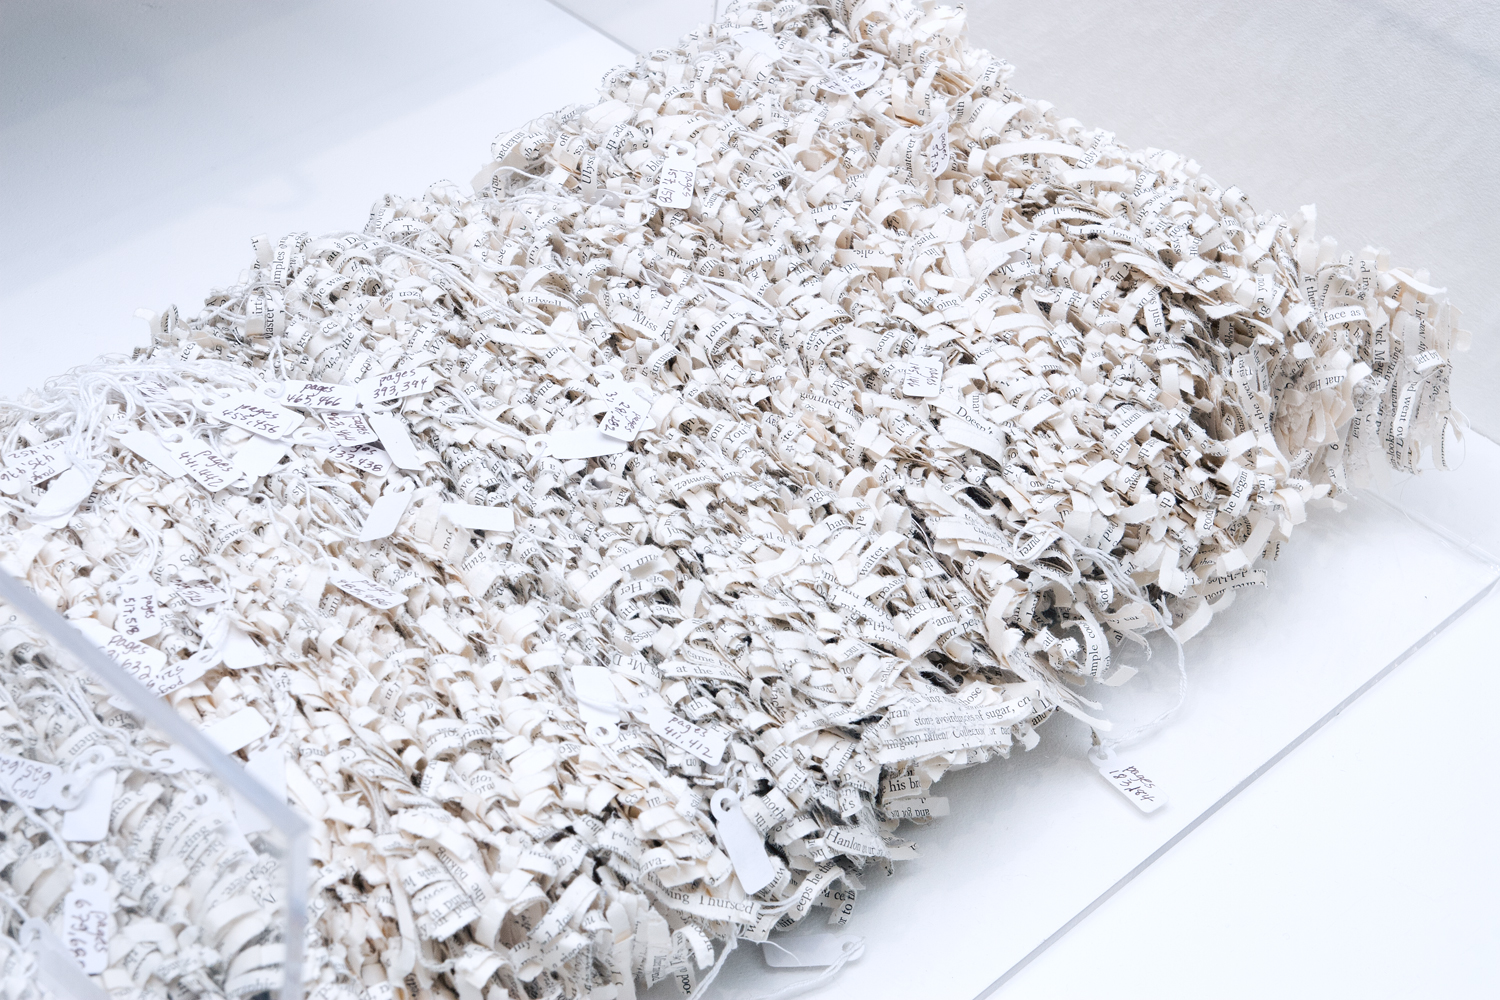 Ulysses , 2010.Shredded pages of book, thread, tags, book cover, 8 x 17 x 24 inches.Book: Pollan, Michael. The Botany of Desire